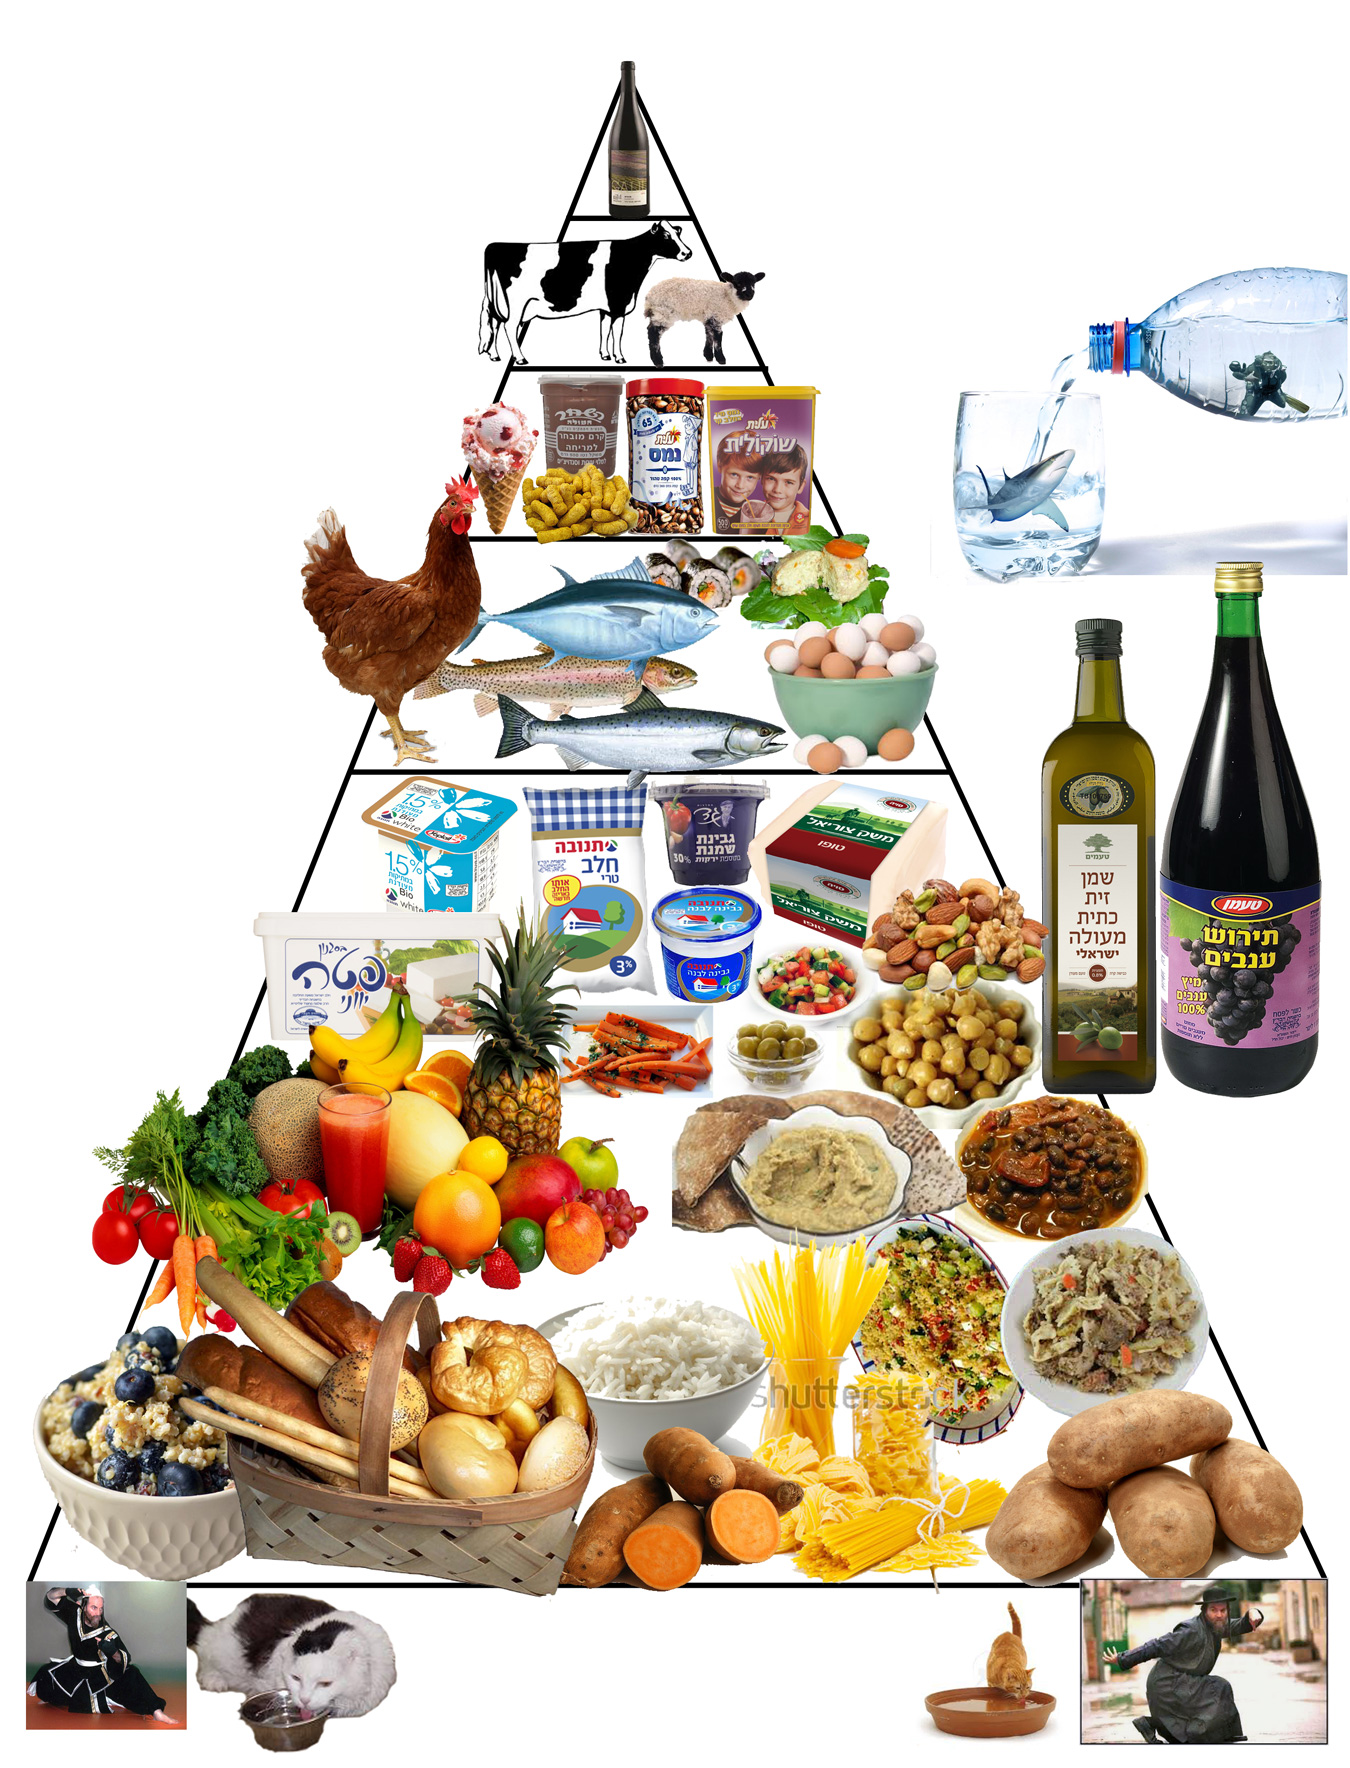 Kosher-Israeli-Food-pyramid